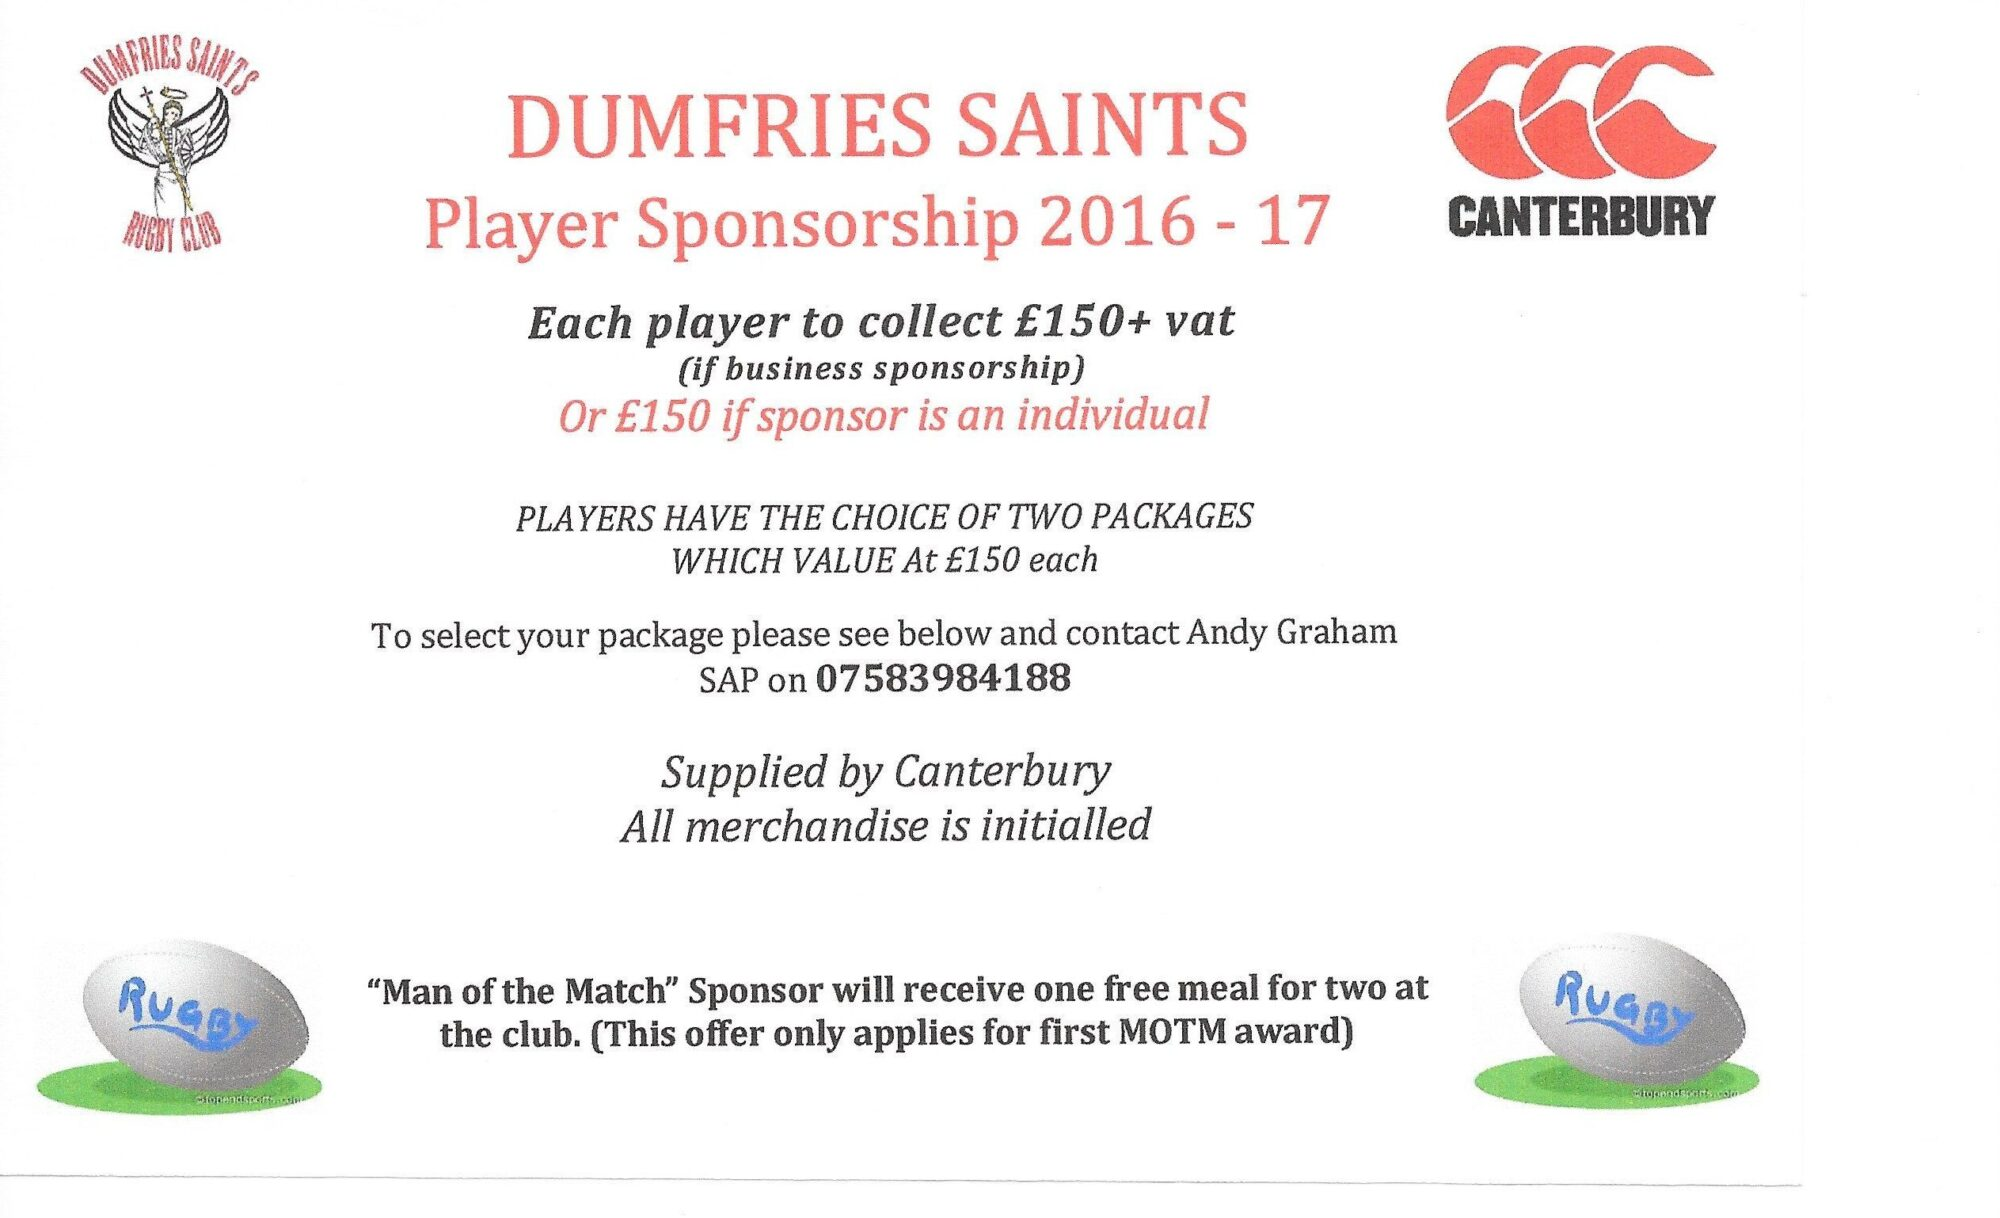 PLAYER SPONSORSHIP 1617